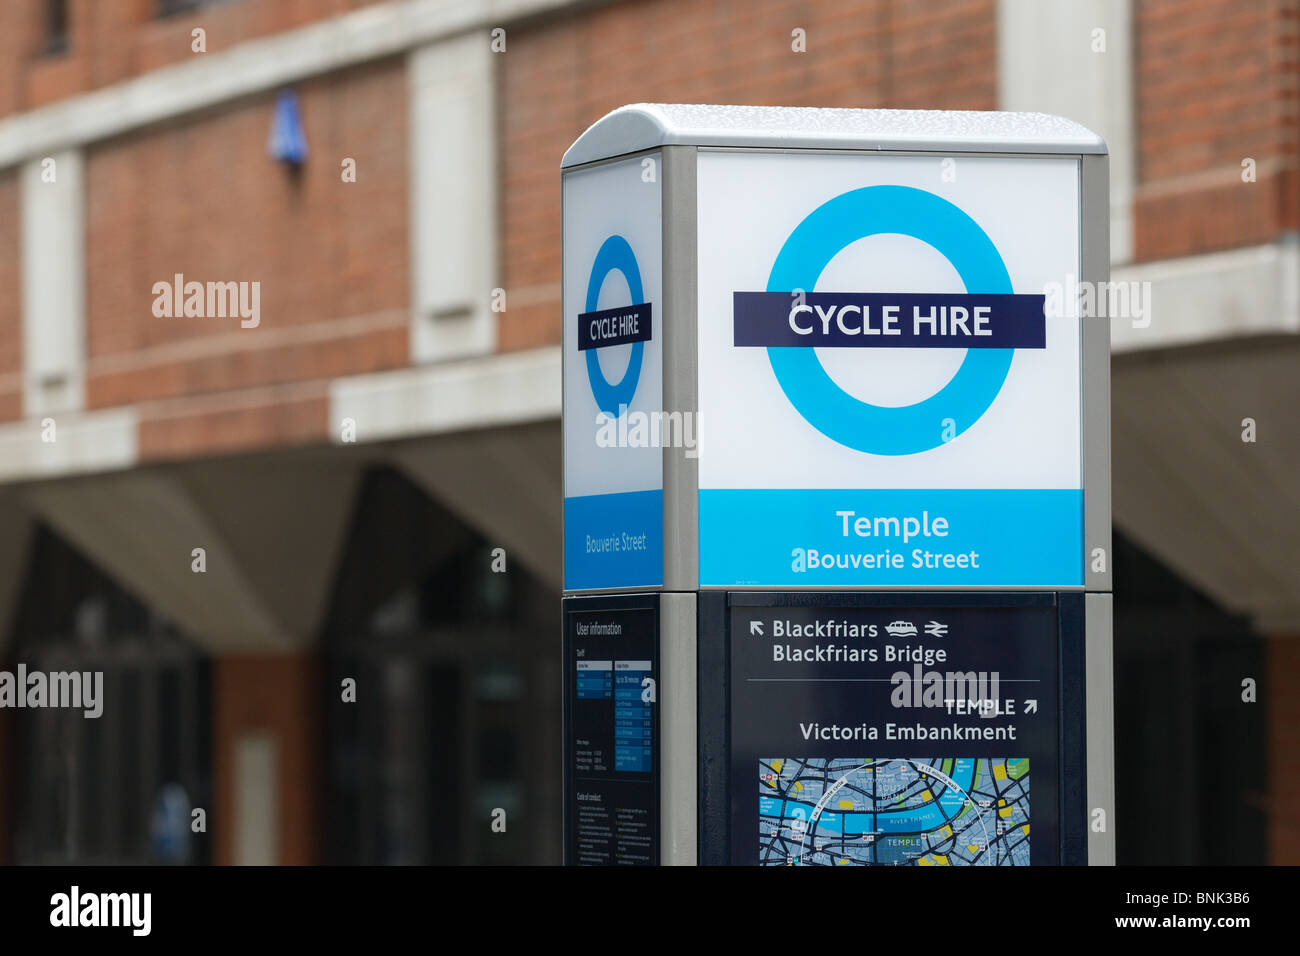 Transport for London's (TfL) Cycle Hire Scheme - Stock Image